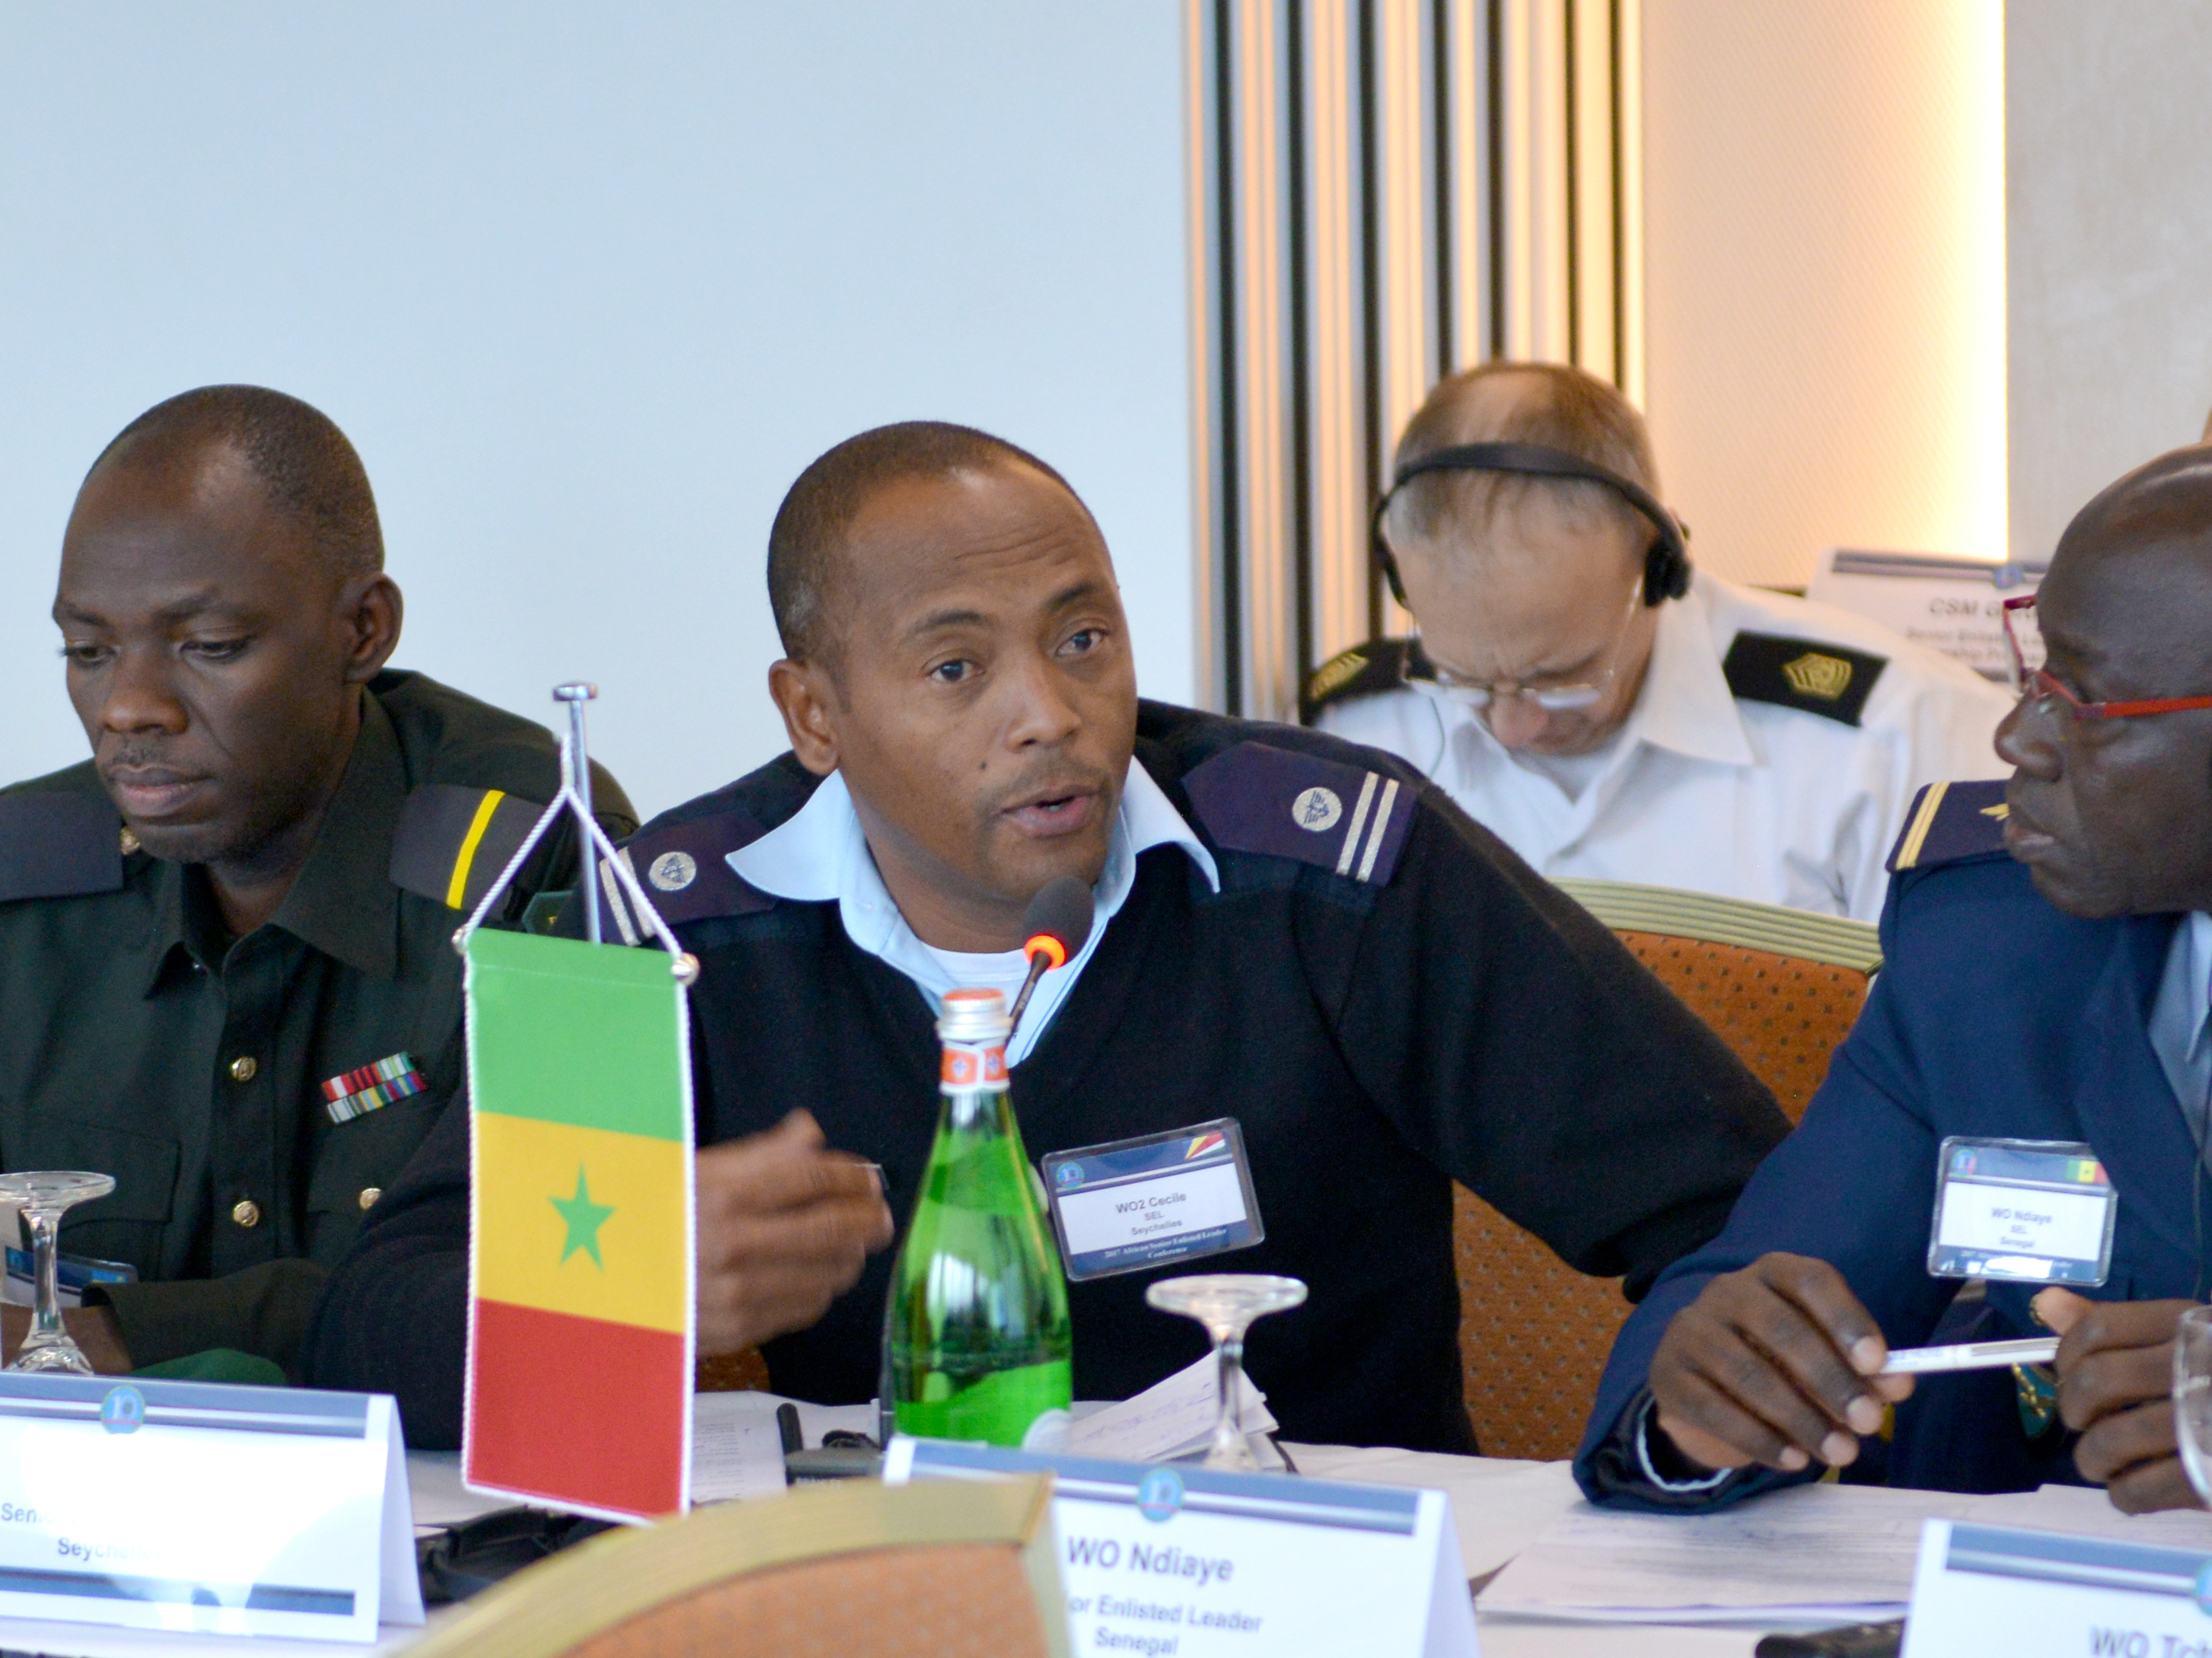 GRAINAU, Germany —Warrant Officer 2 Jeffery Cecile, senior enlisted leader, Seychelles People's Defence Force, asks a question, Nov. 9, 2017, during the first ever U.S. Africa Command hosted, Africa Senior Enlisted Leader Conference, held in Grainau, Germany Nov. 6-10. The conference brought together Senior Enlisted Leaders from more than 20 African nations and the U.S. to discuss shared challenges and opportunities.